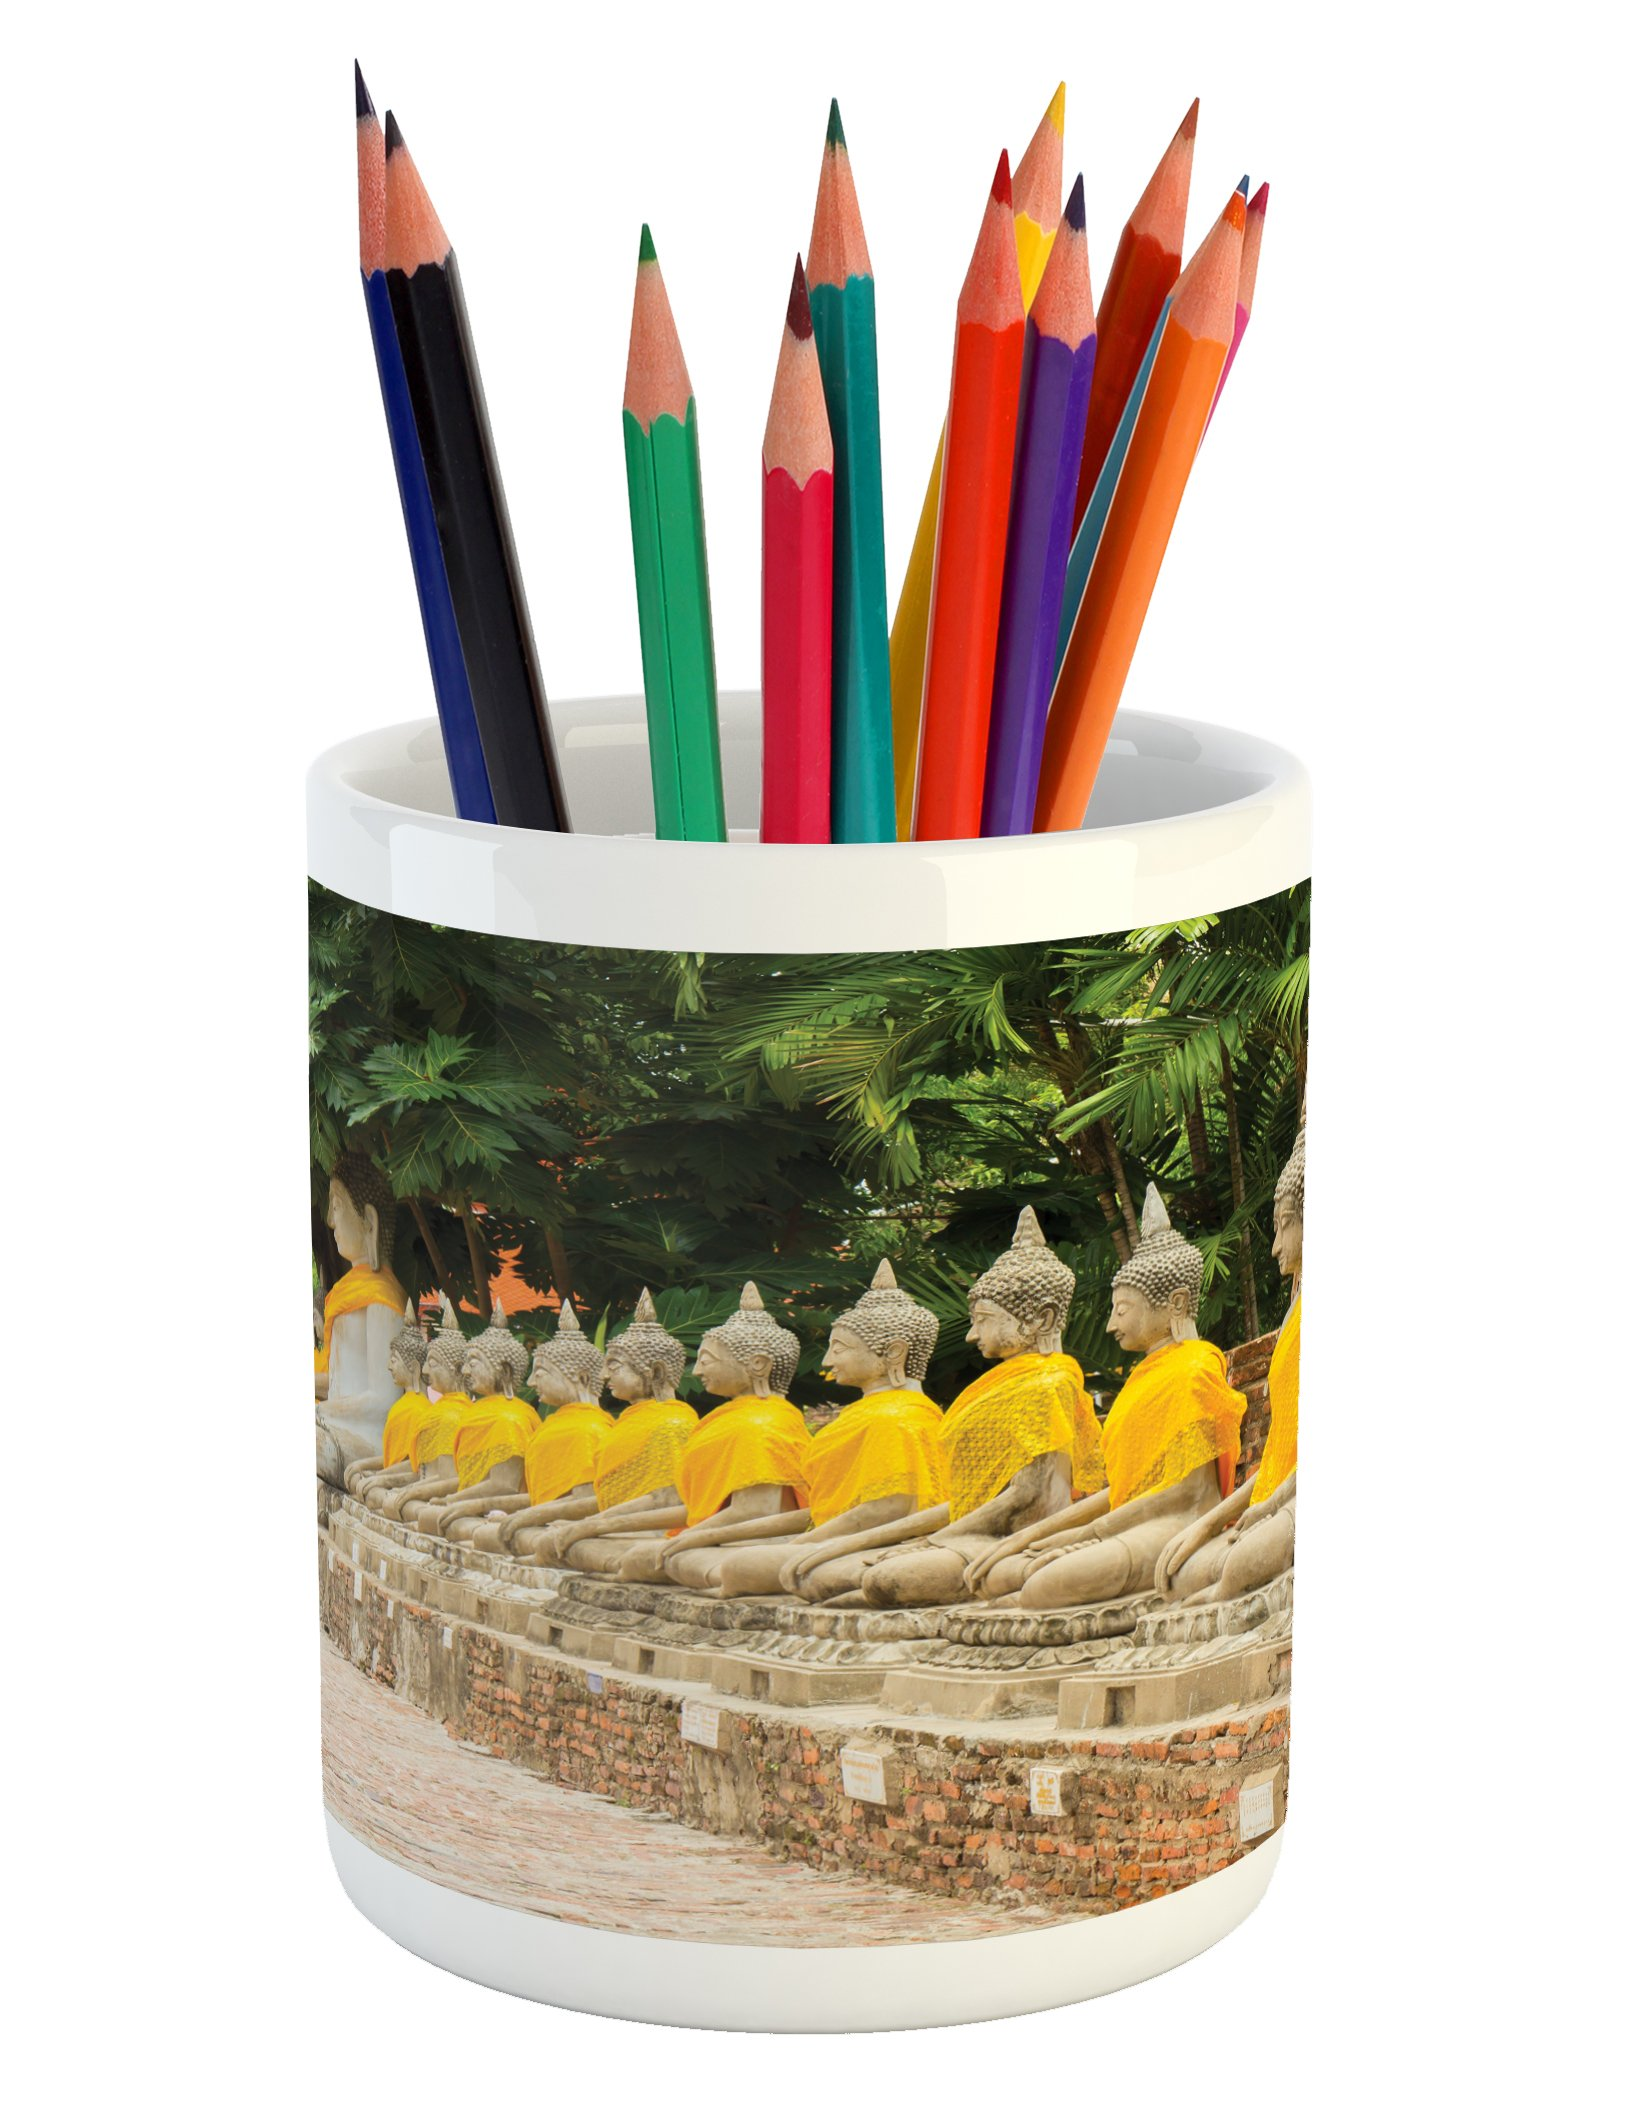 Ambesonne Asian Pencil Pen Holder, Picture of Aligned Religious Statues in Thailand Traditional Thai Design, Printed Ceramic Pencil Pen Holder for Desk Office Accessory, Cream Yellow Green by Ambesonne